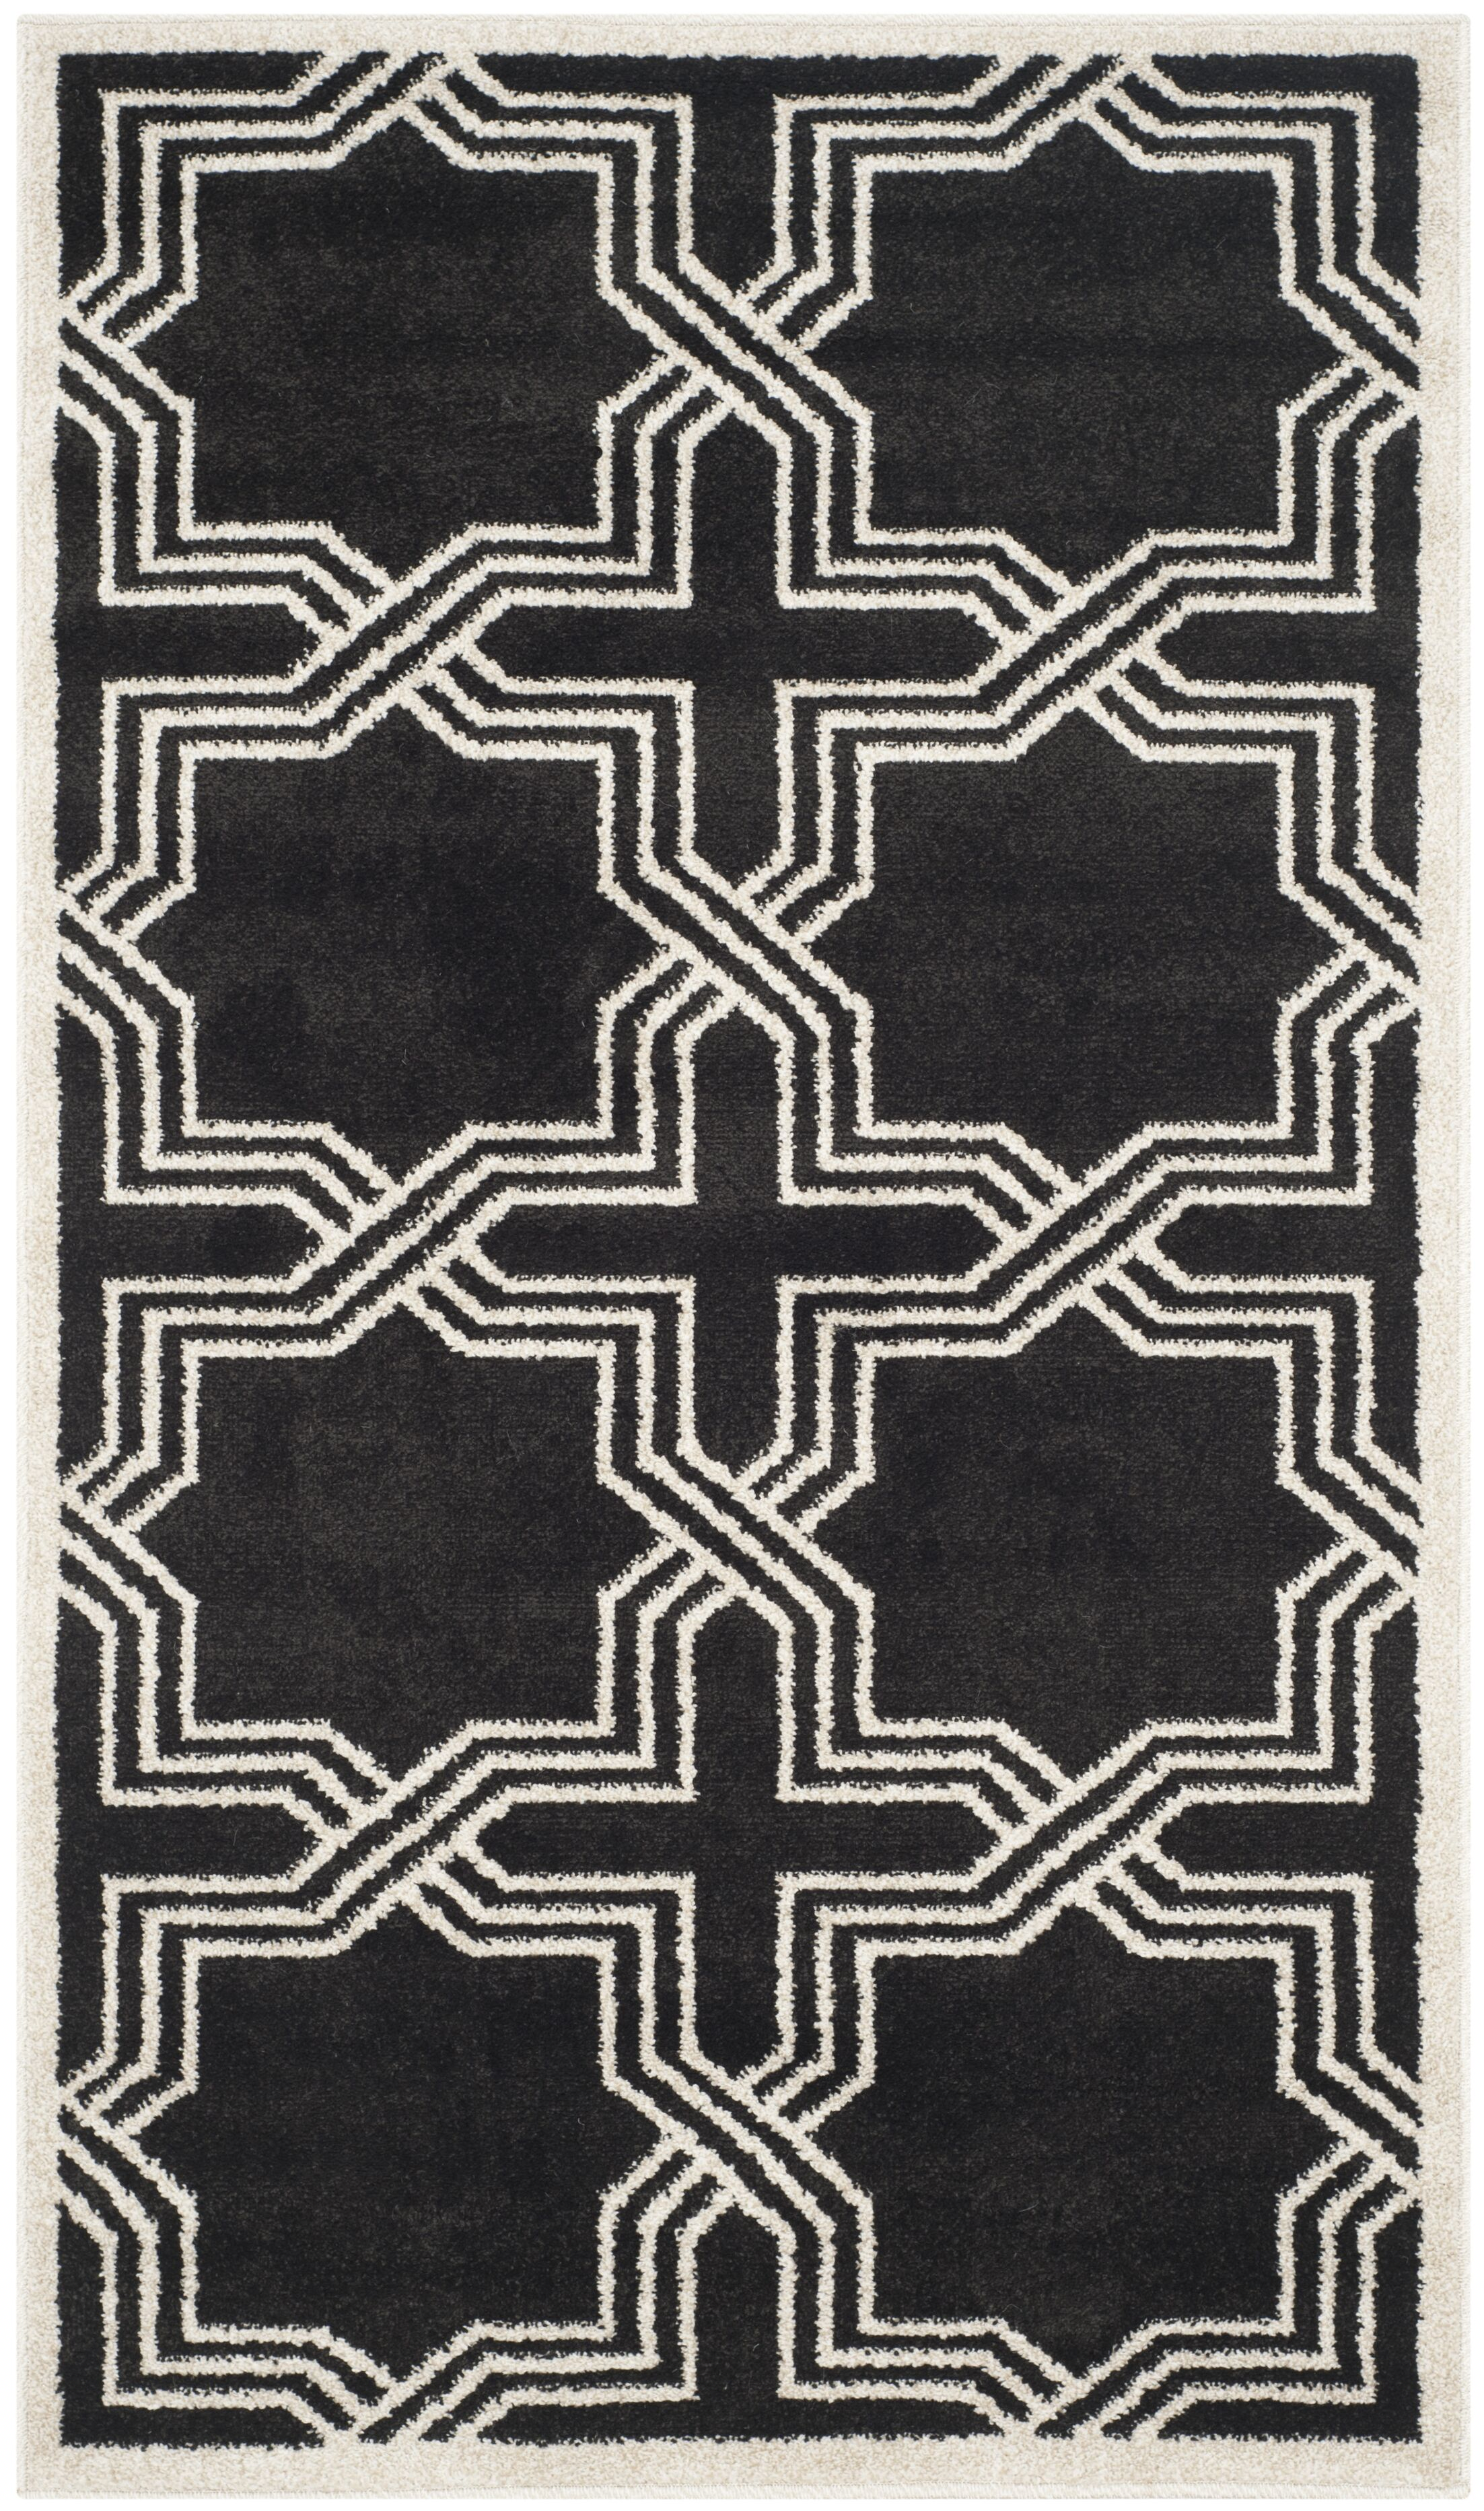 McArthur Black/Ivory Indoor/Outdoor Area Rug Rug Size: Rectangle 4' x 6'